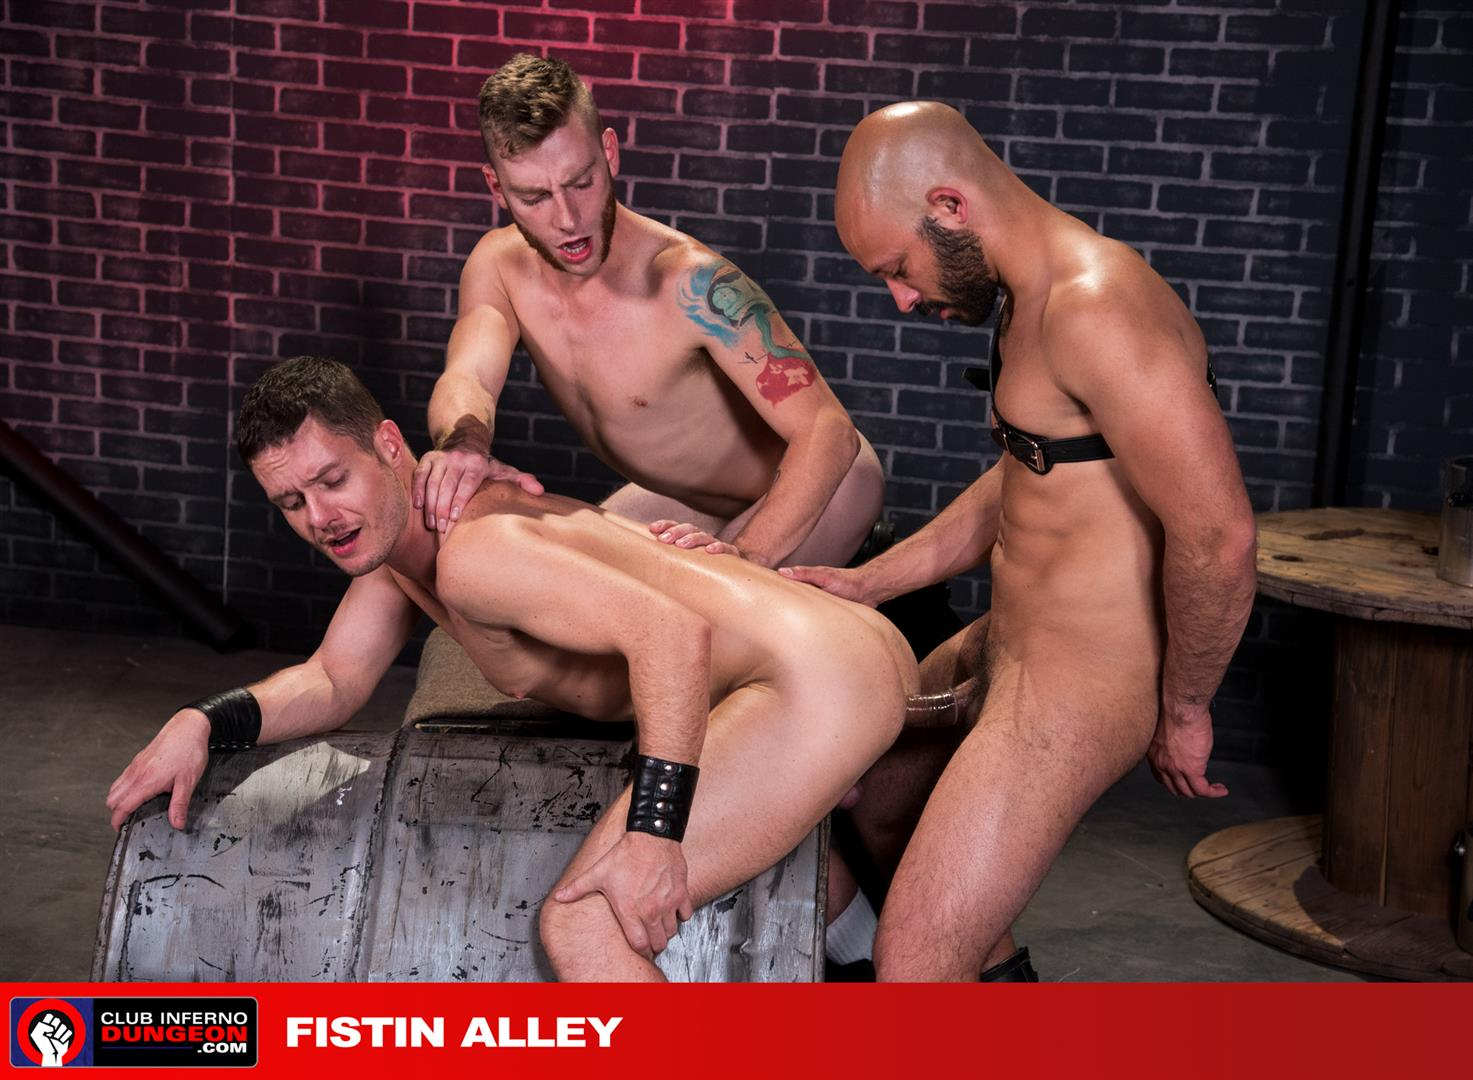 Club-Inferno-Dungeon-Sebastian-Keys-and-Dylan-Strokes-and-Ashley-Ryder-Fisting-06 Sebastian Keys and Ashley Ryder Get Their Asses Fisted